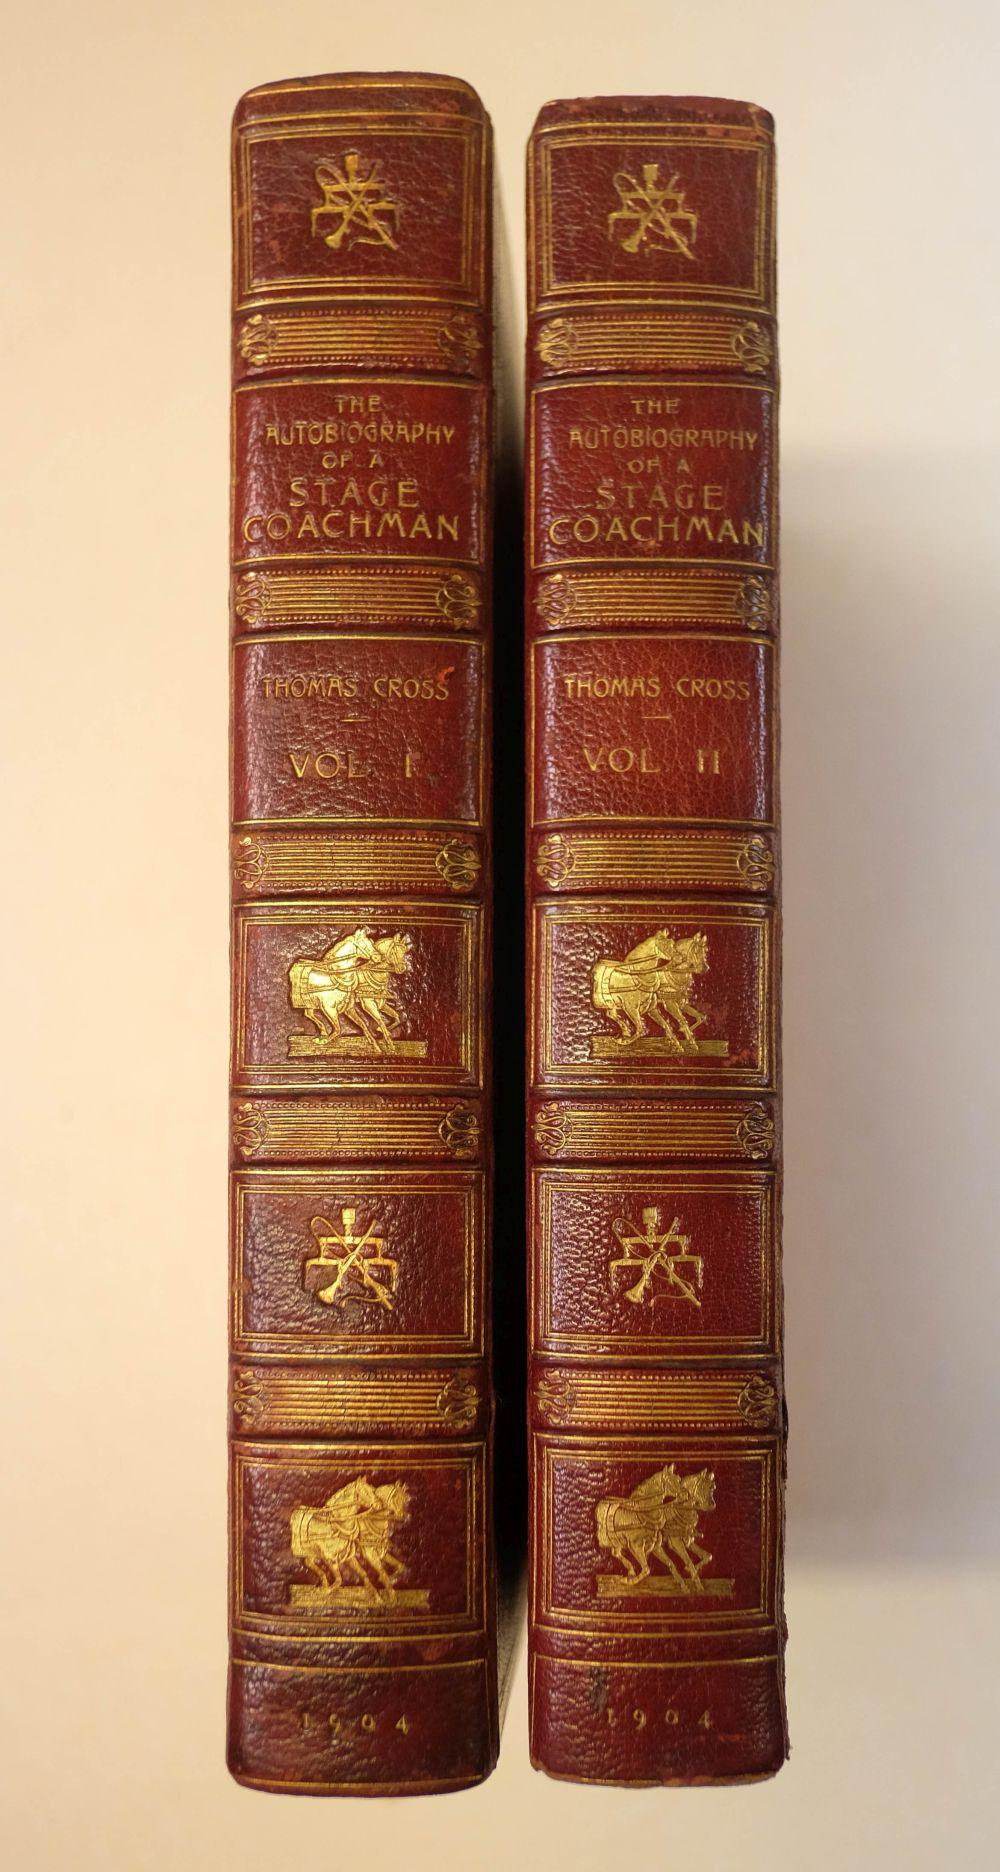 Cross (Thomas). The Autobiography of a Stage Coachman, 2 volumes, 1904